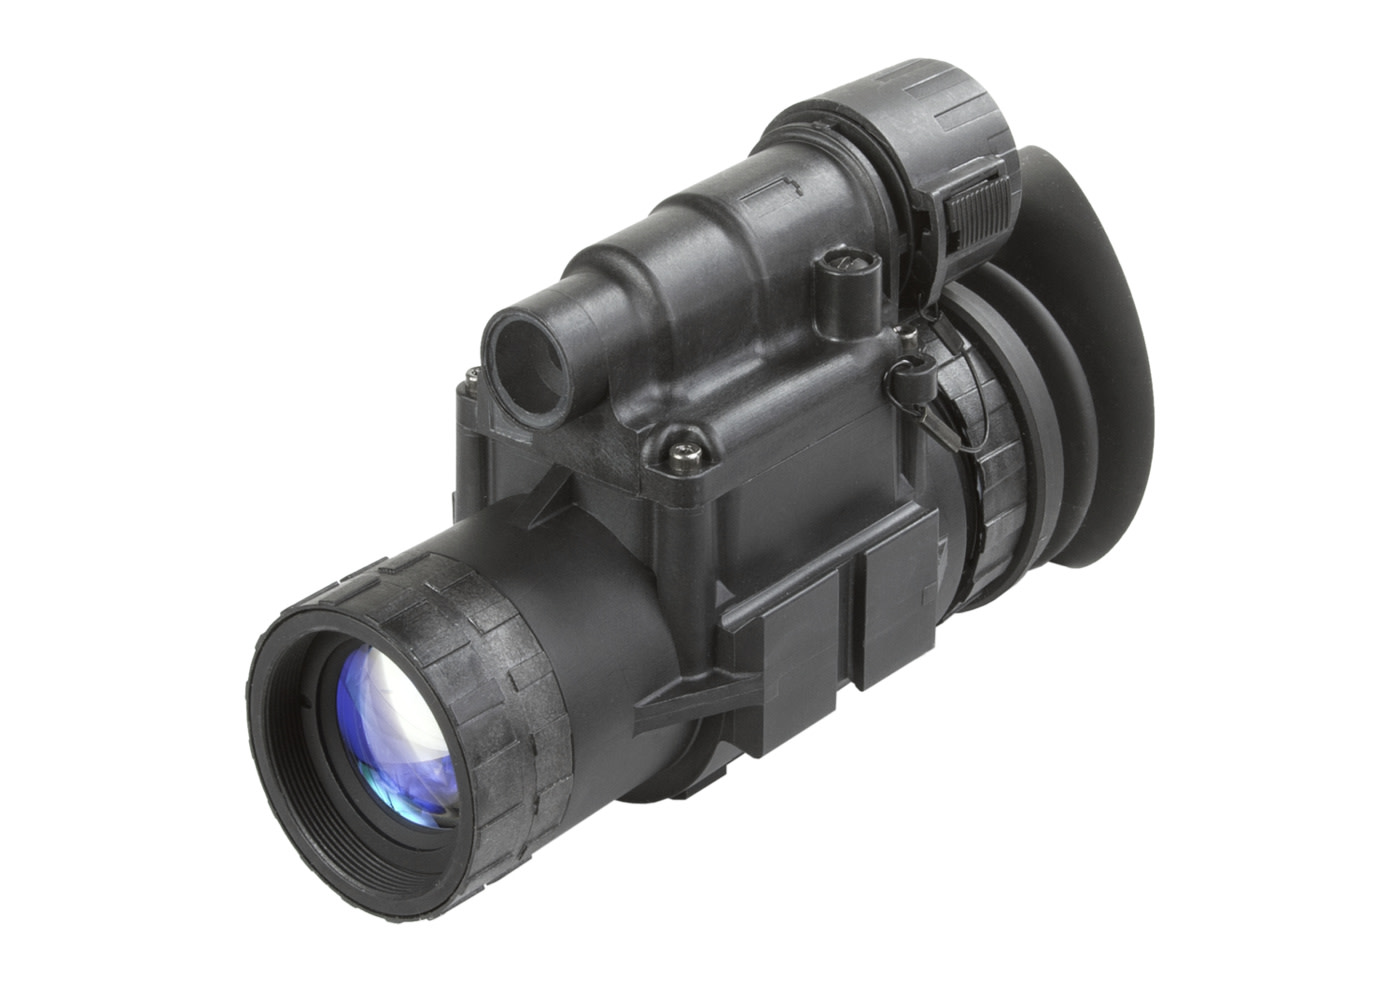 PRG Defense MUM-14A NL1 Mil Spec Night Vision Monocular - Gen 2+ Level 1